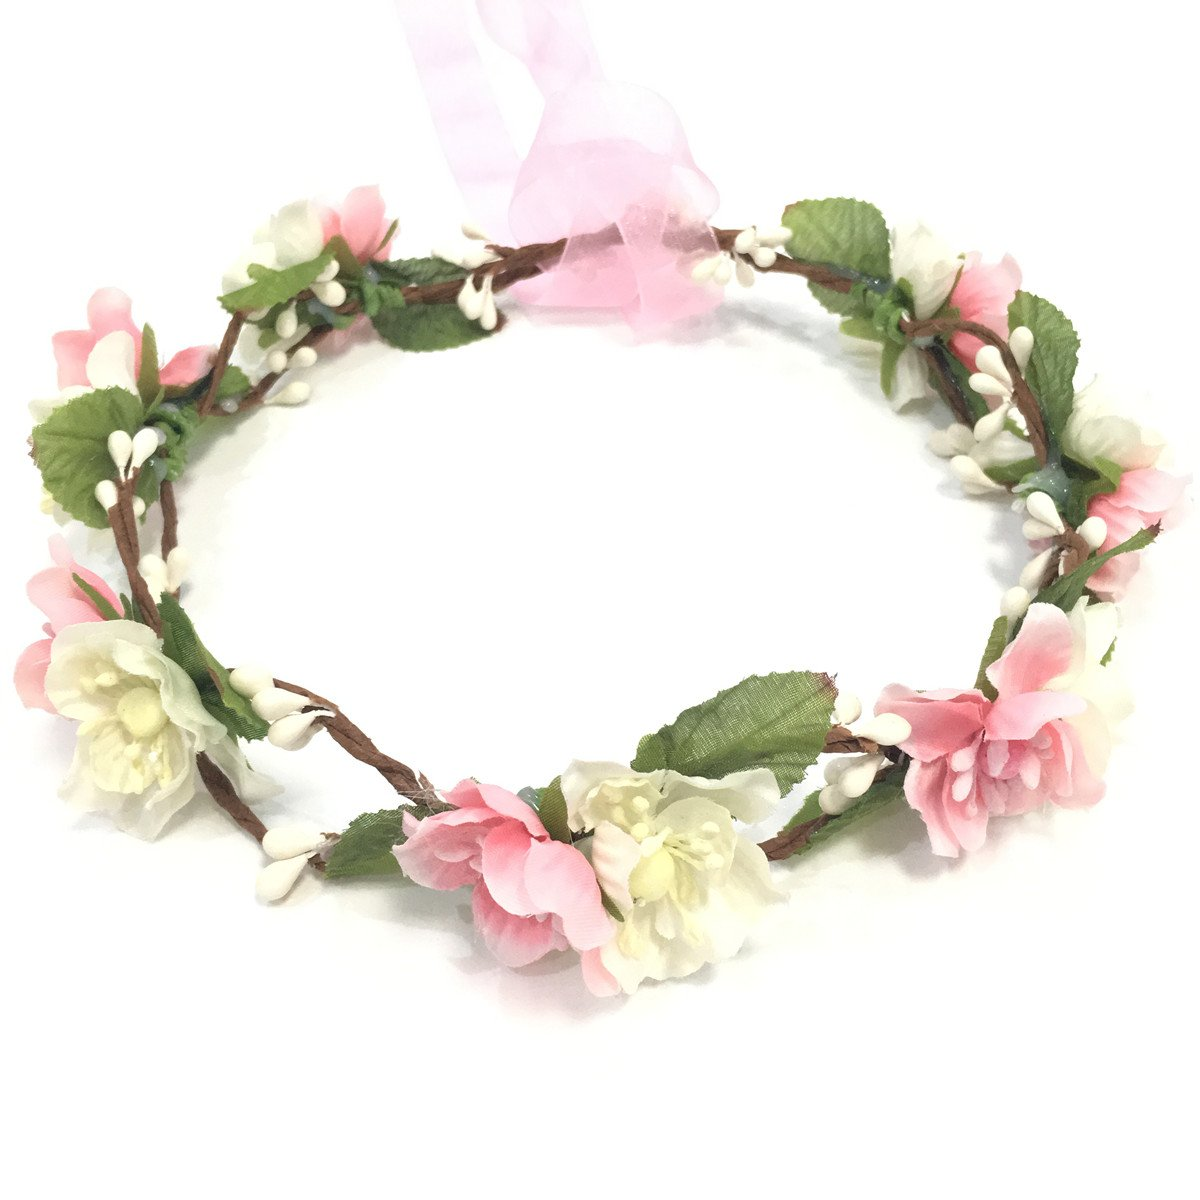 Amazon.com   Bridal Flower Crown Floral Crown Wedding Wreath Headband  Garland Women Pink   Beauty 9a221932ceb